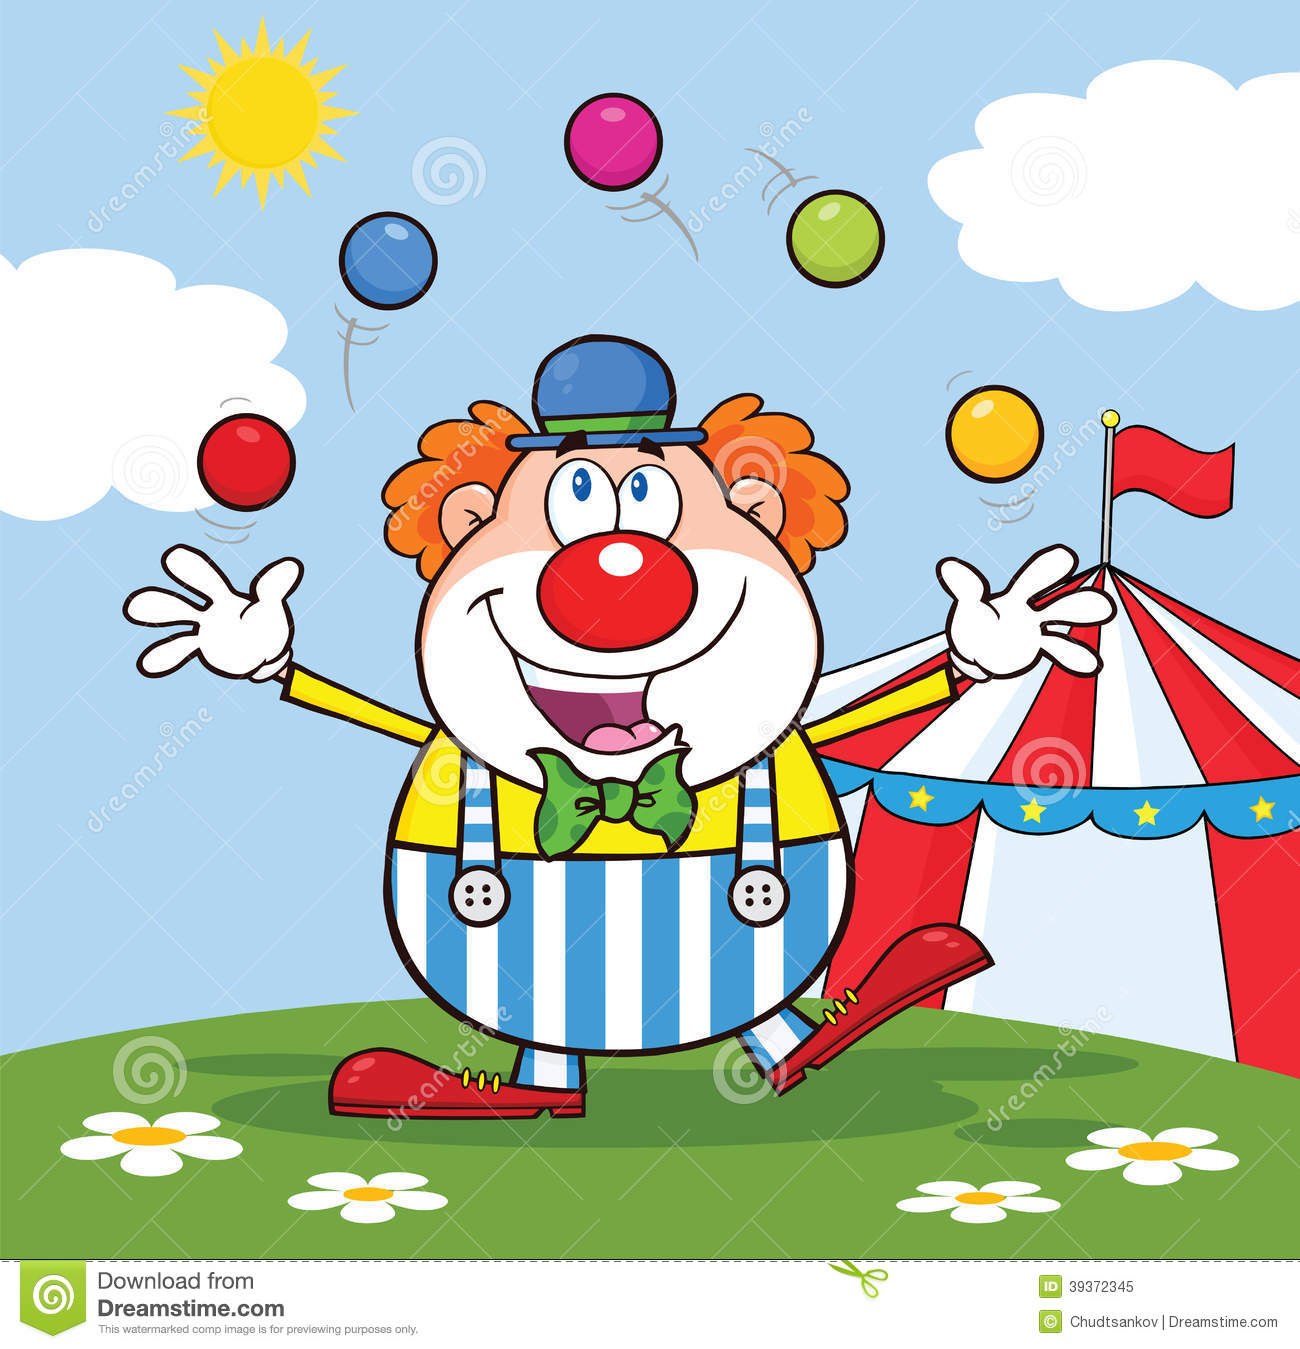 Clown Cartoon Character Juggling With Balls In Front Of Circus Tent  sc 1 st  Dreamstime.com & Clown Cartoon Character Juggling With Balls In Front Of Circus ...